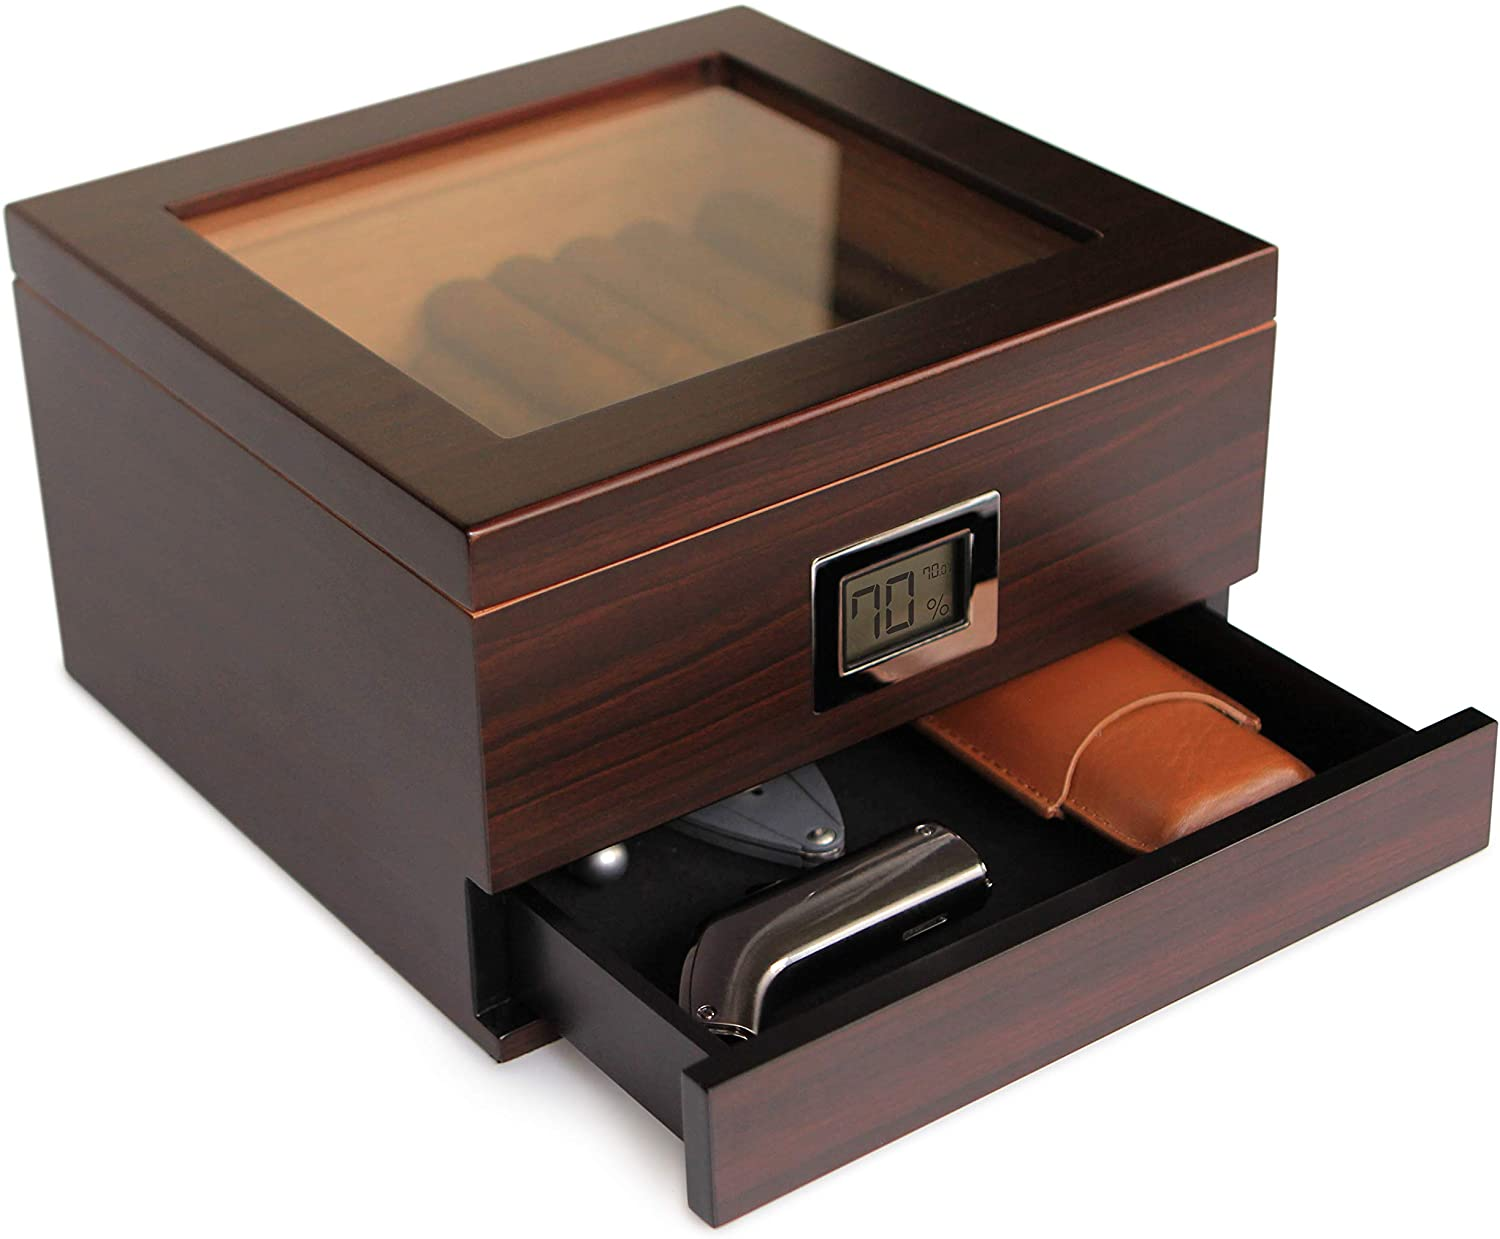 CASE ELEGANCE Glass Top Handcrafted Cedar Humidor